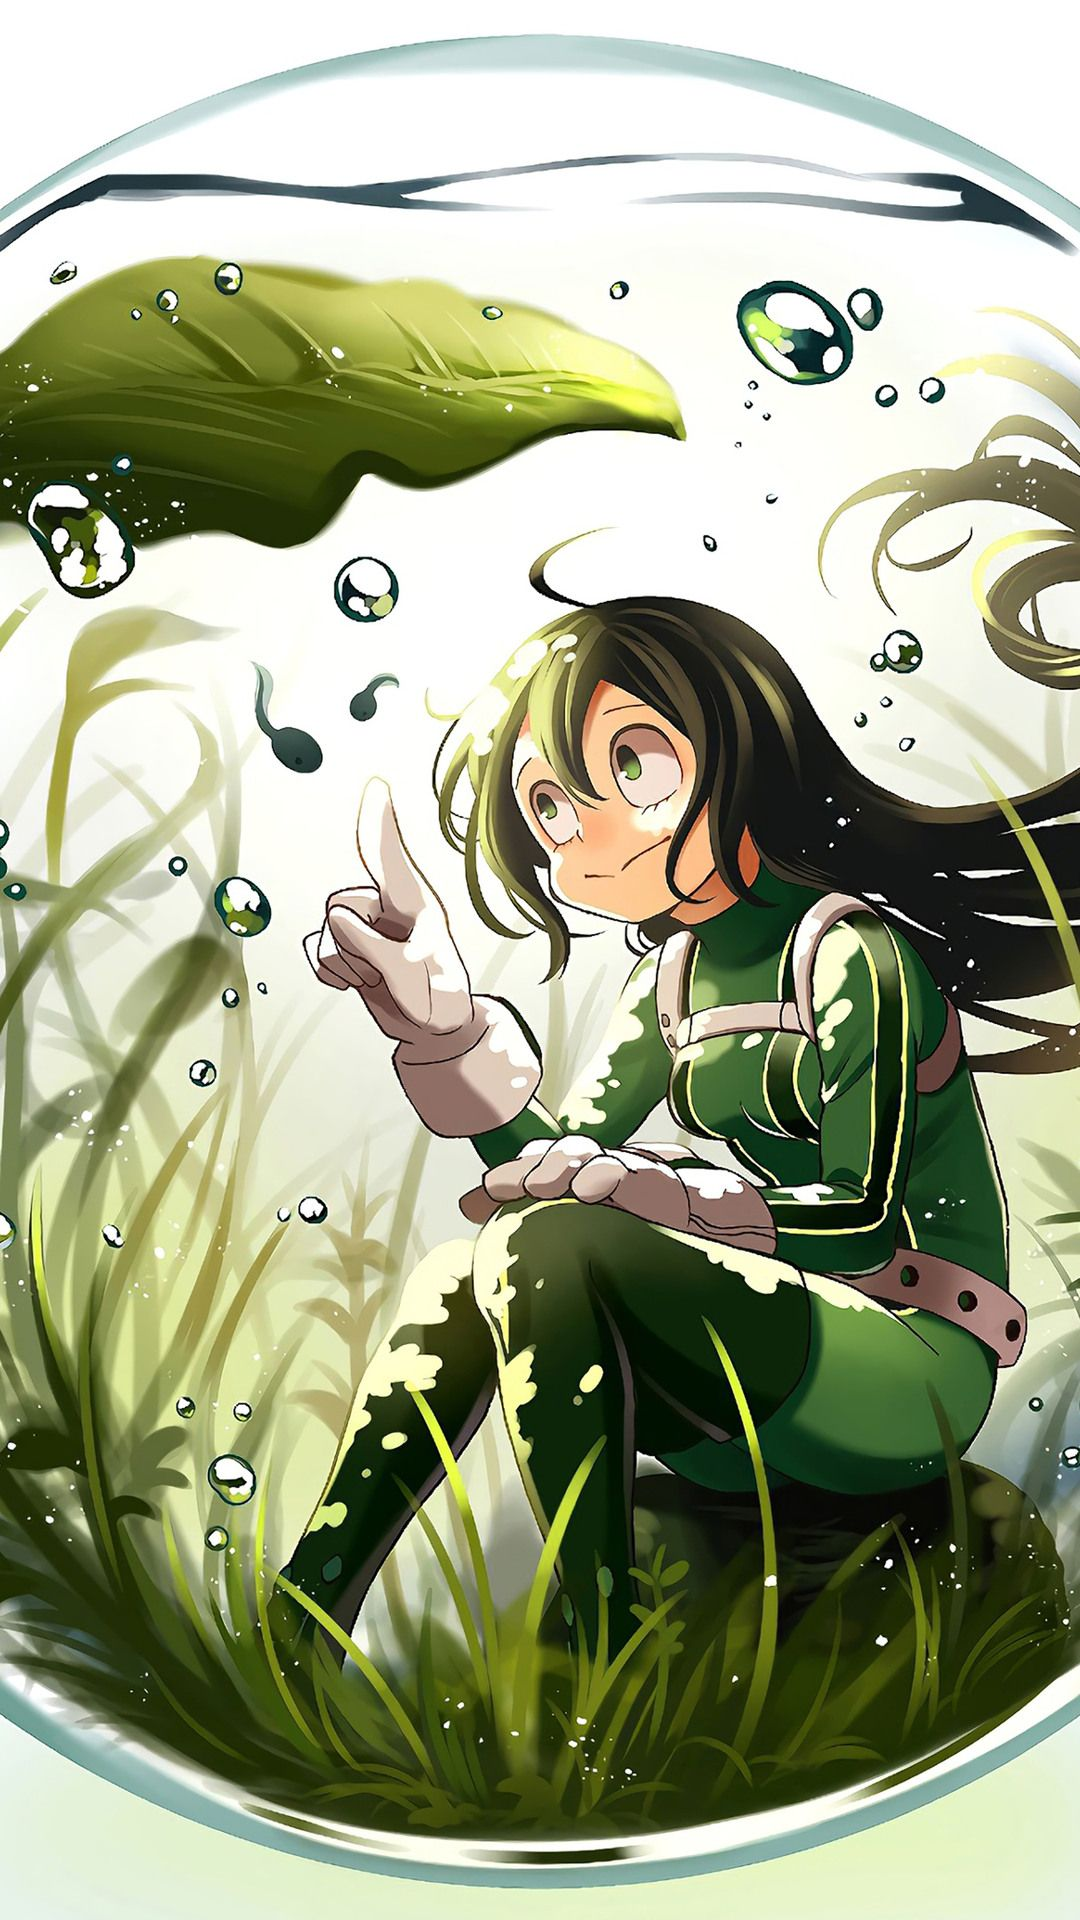 Bnha Tsuyu Asui 4k Phone Desktop Hd Wallpapers 2020 In 2020 My